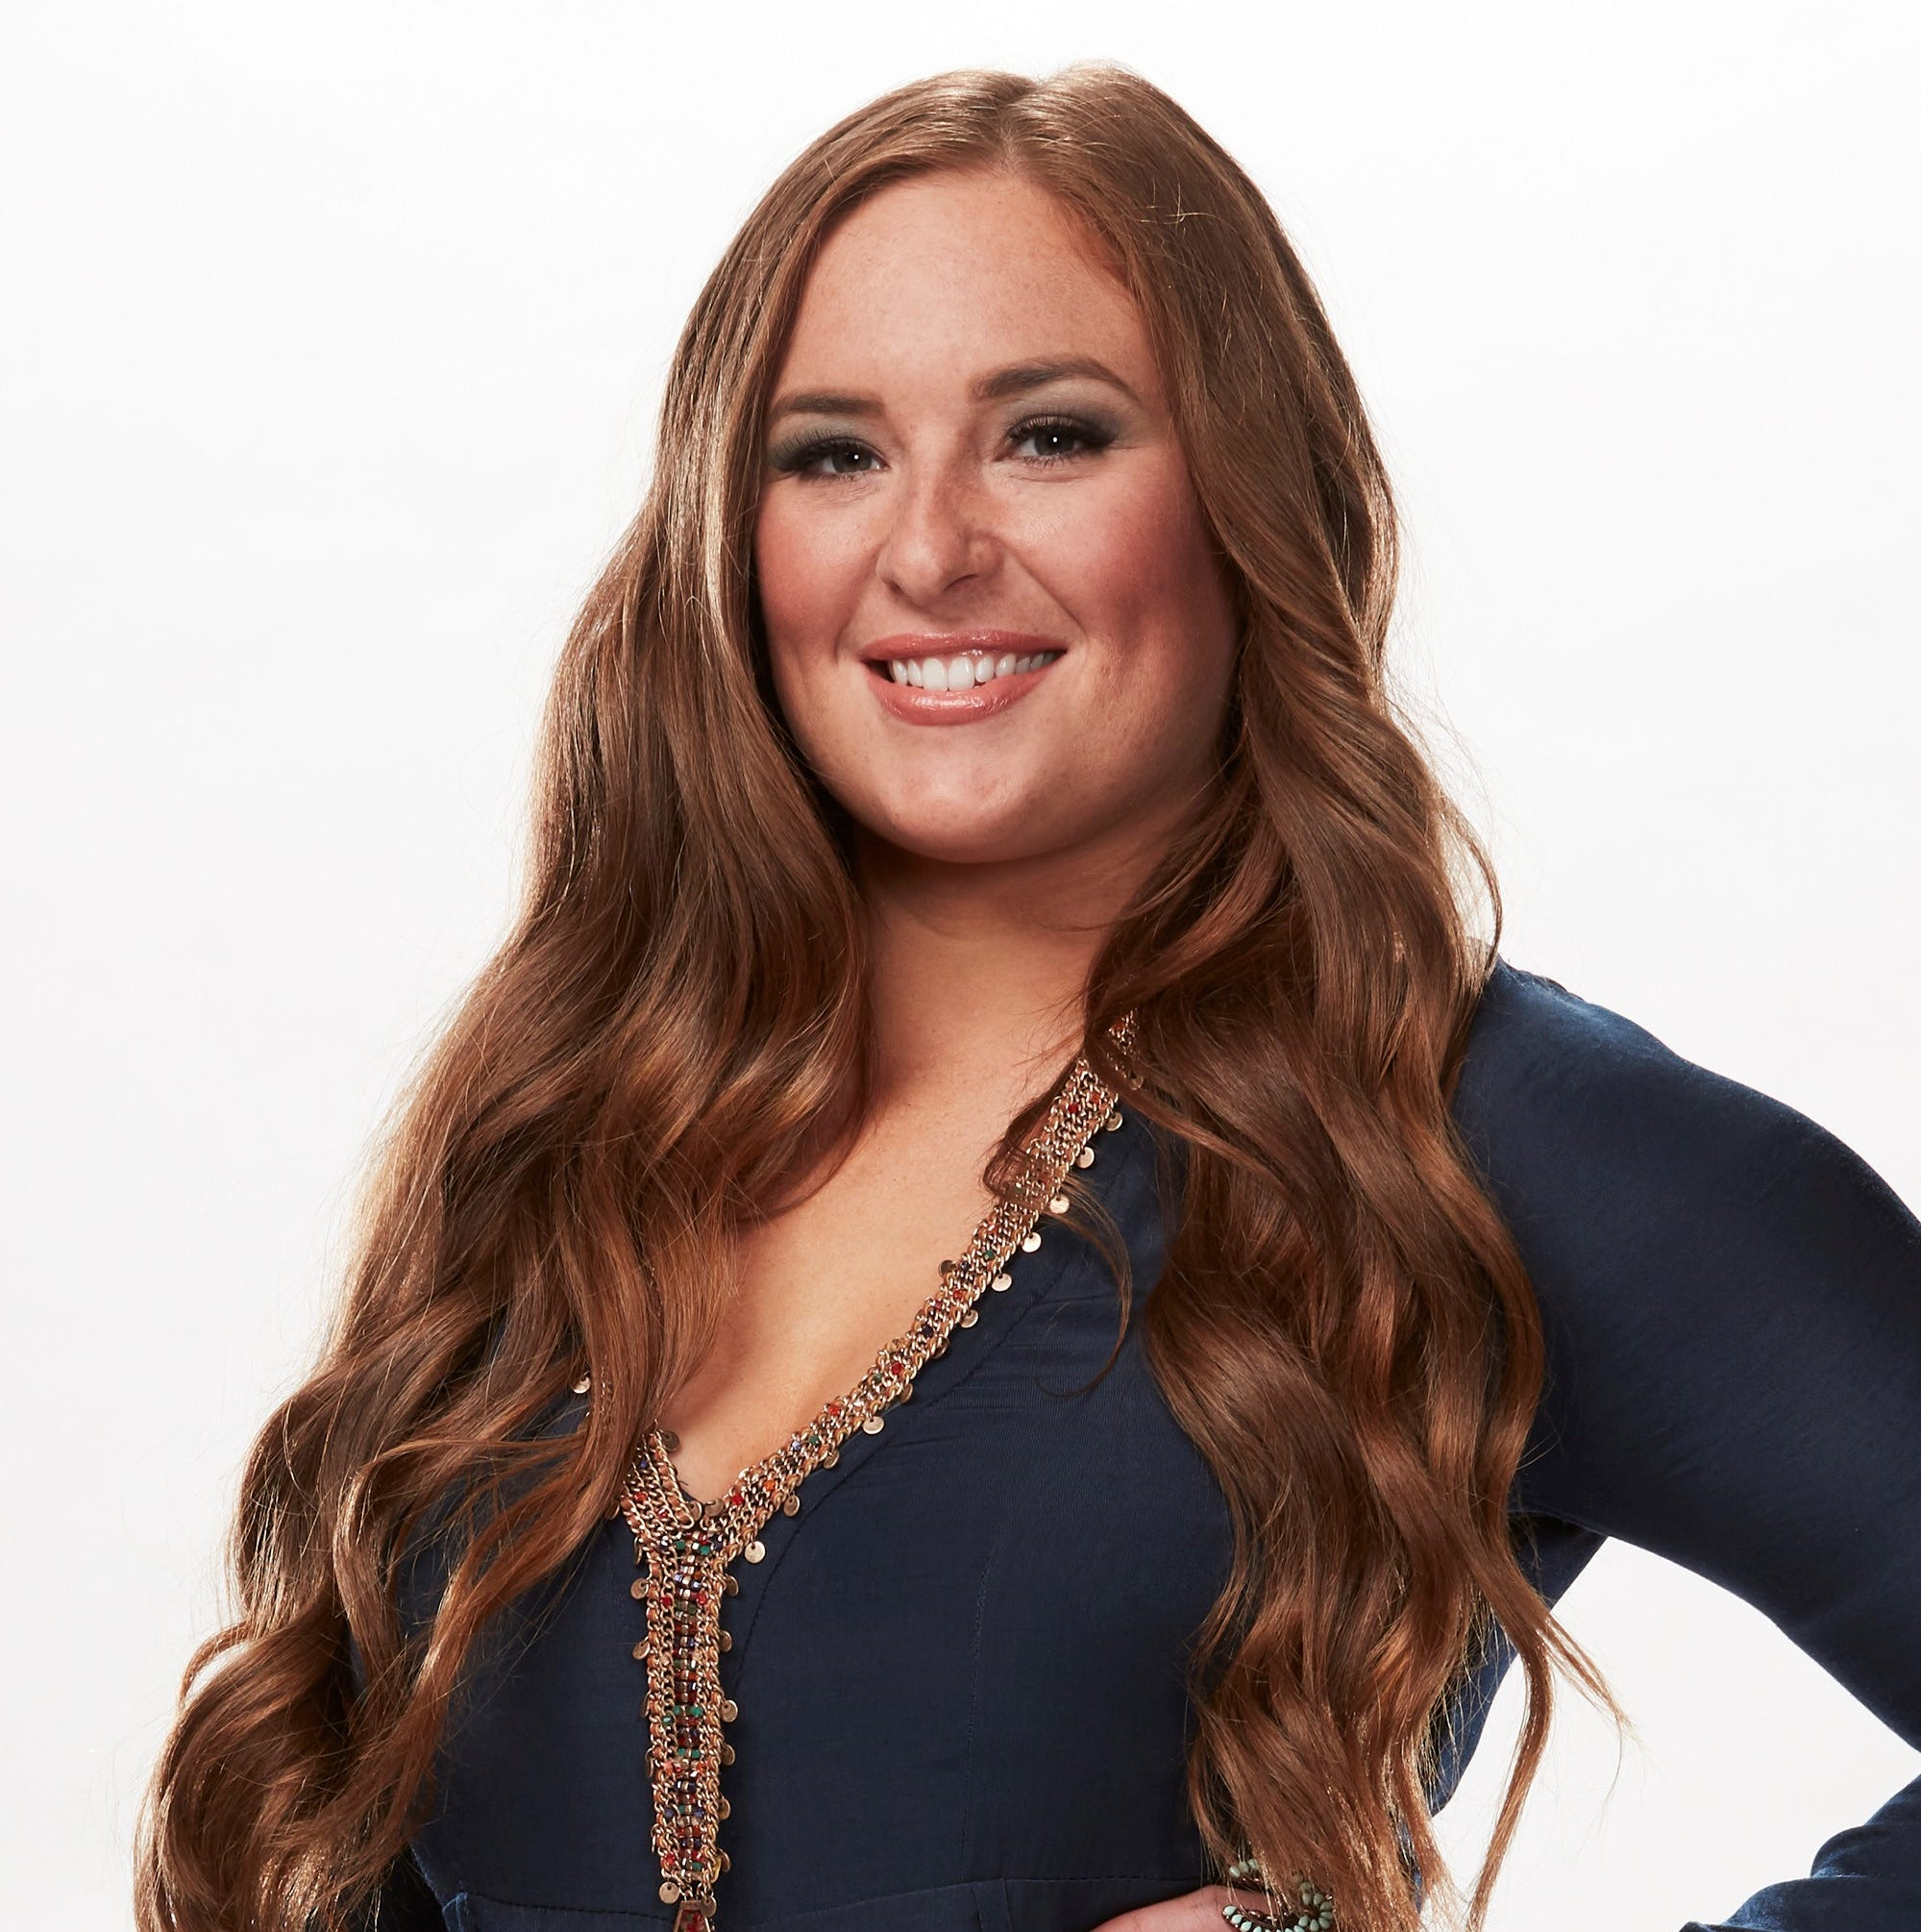 'The Voice': Fort Myers High graduate Kayley Hill makes it to Team Blake